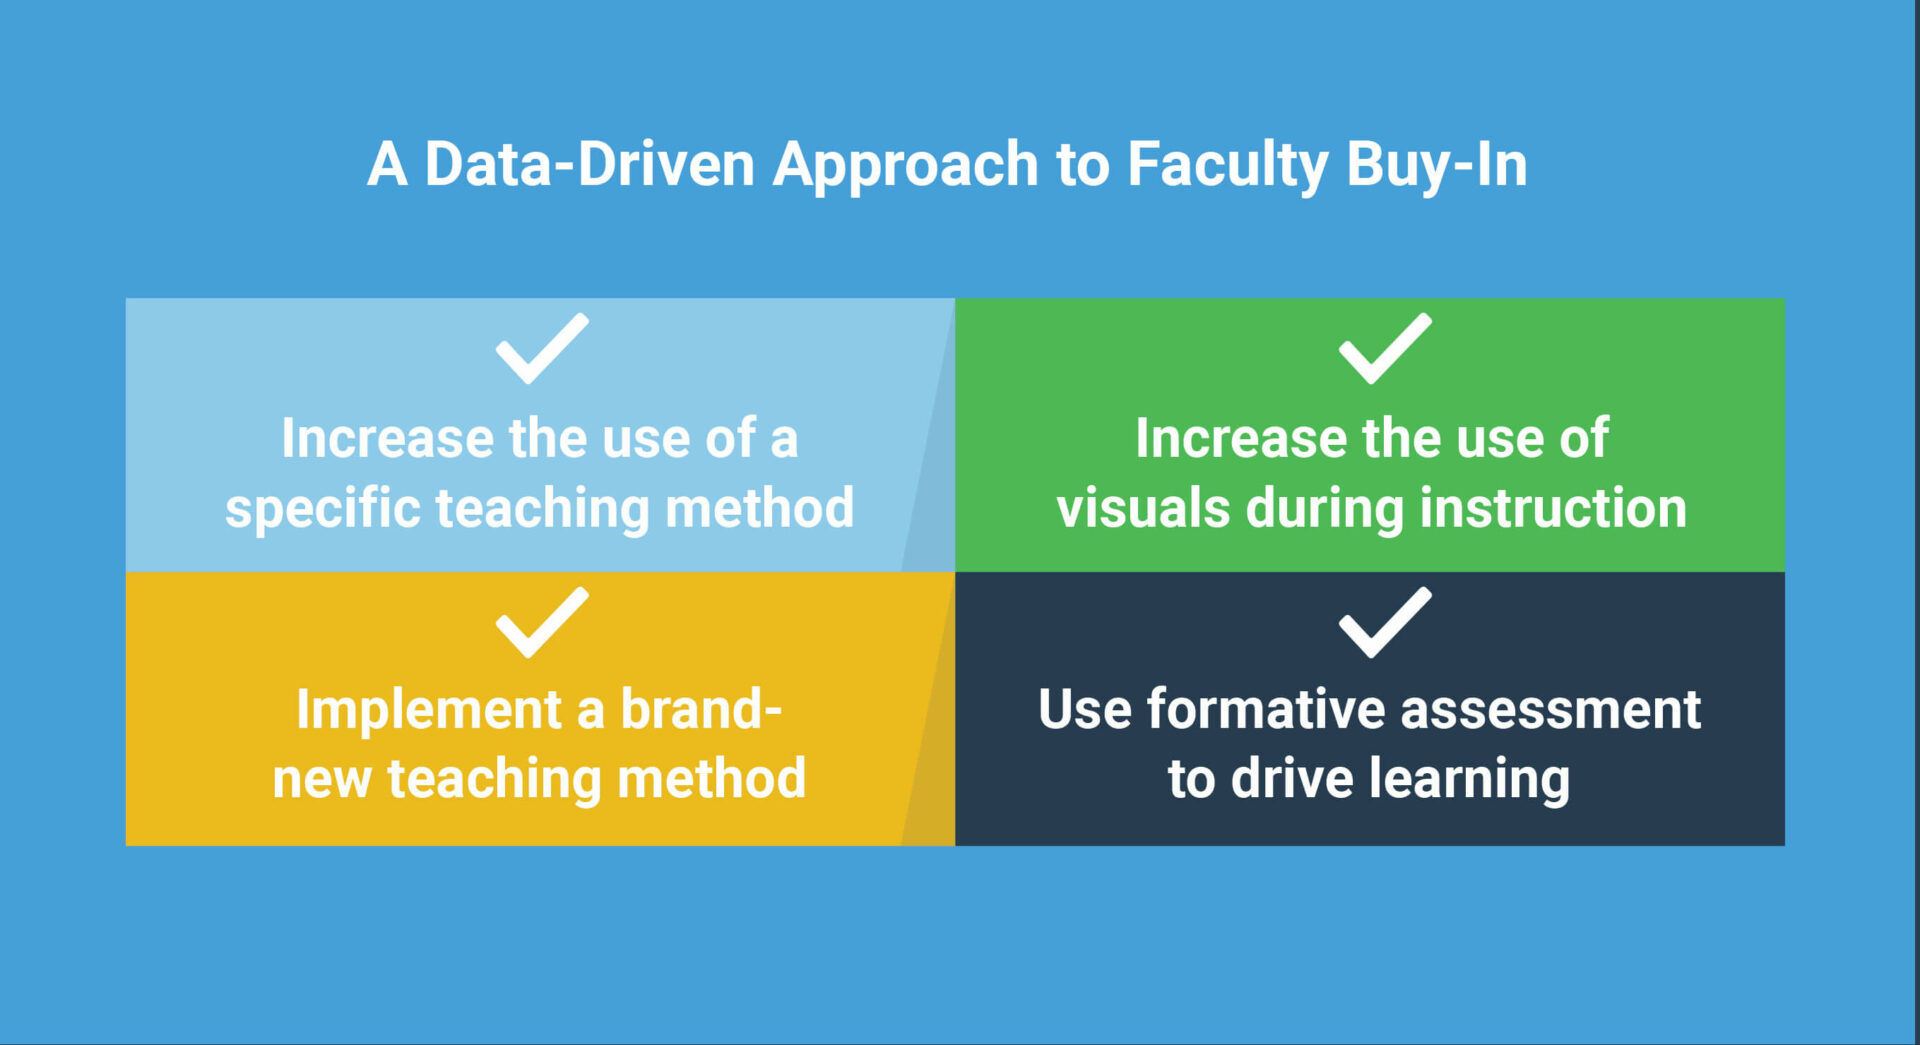 A Data-Driven Approach to Faculty Buy-In